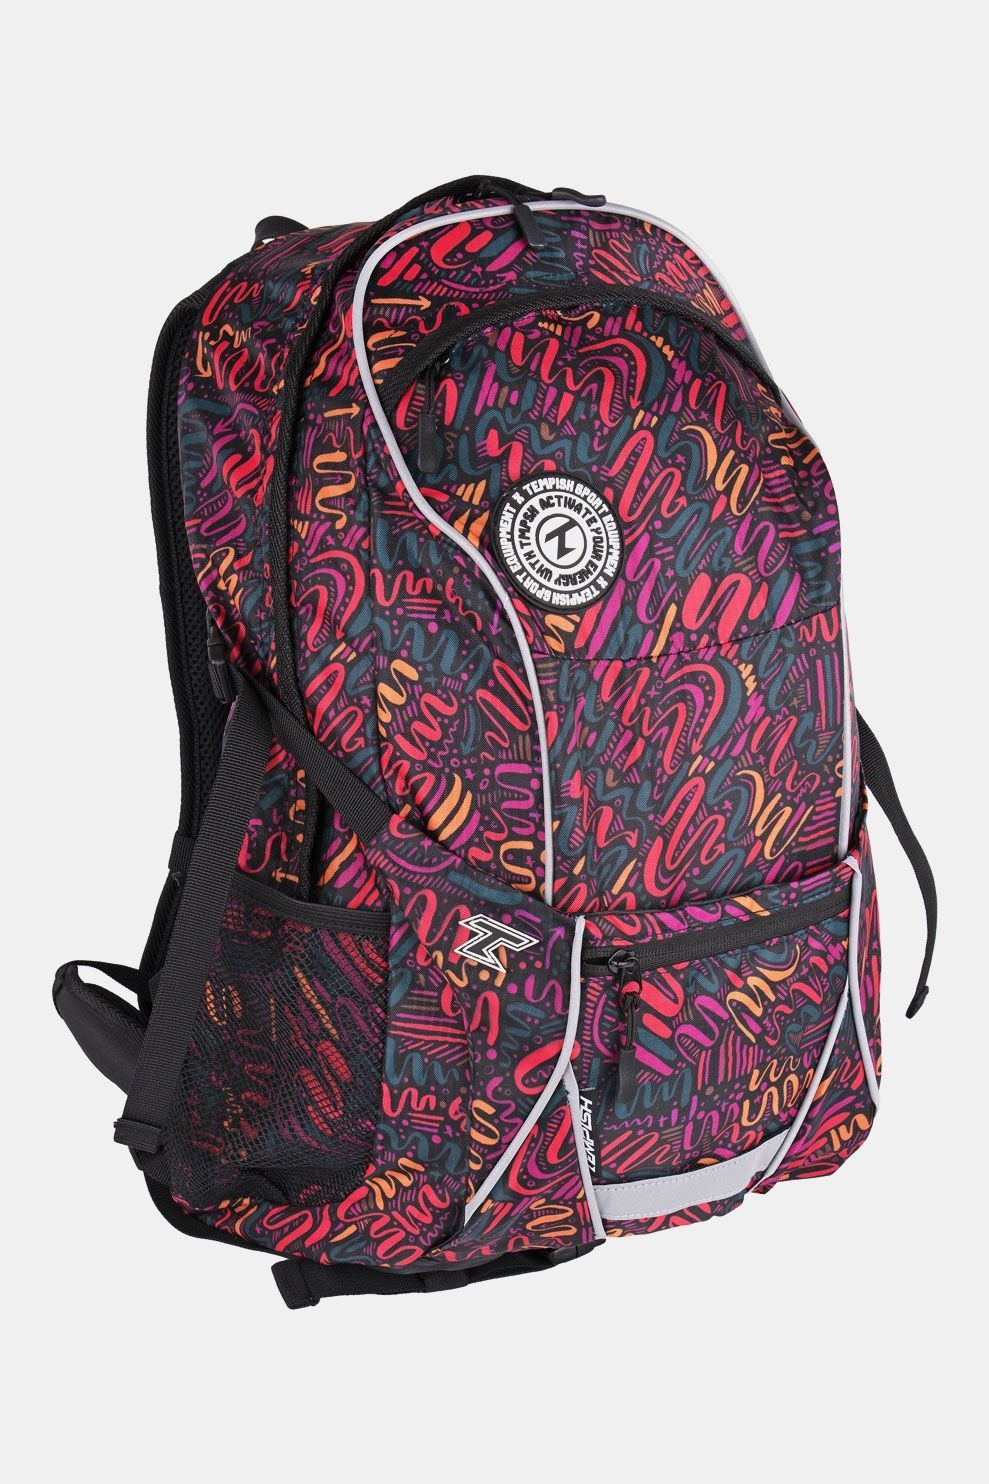 Tempish Dixi New Backpack 27L Zwart/Rood